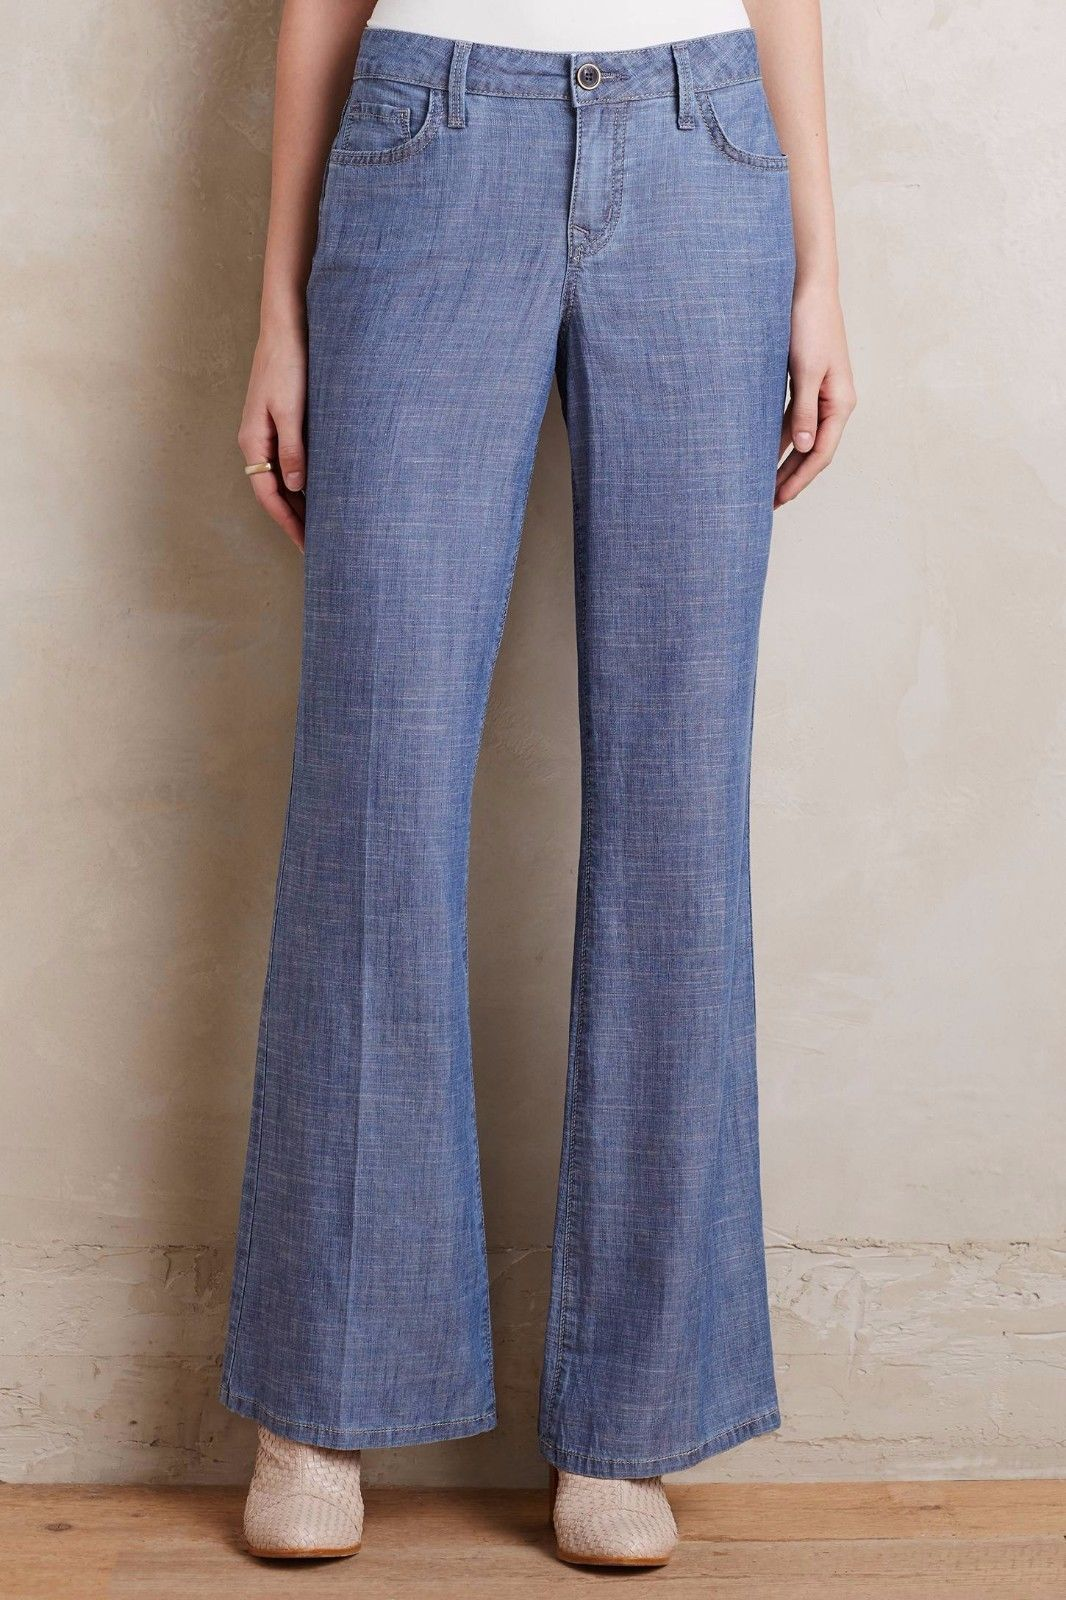 Primary image for NWT LEVEL 99 NEWPORT CHAMBRAY FLARED WIDE-LEG TROUSER JEANS 28